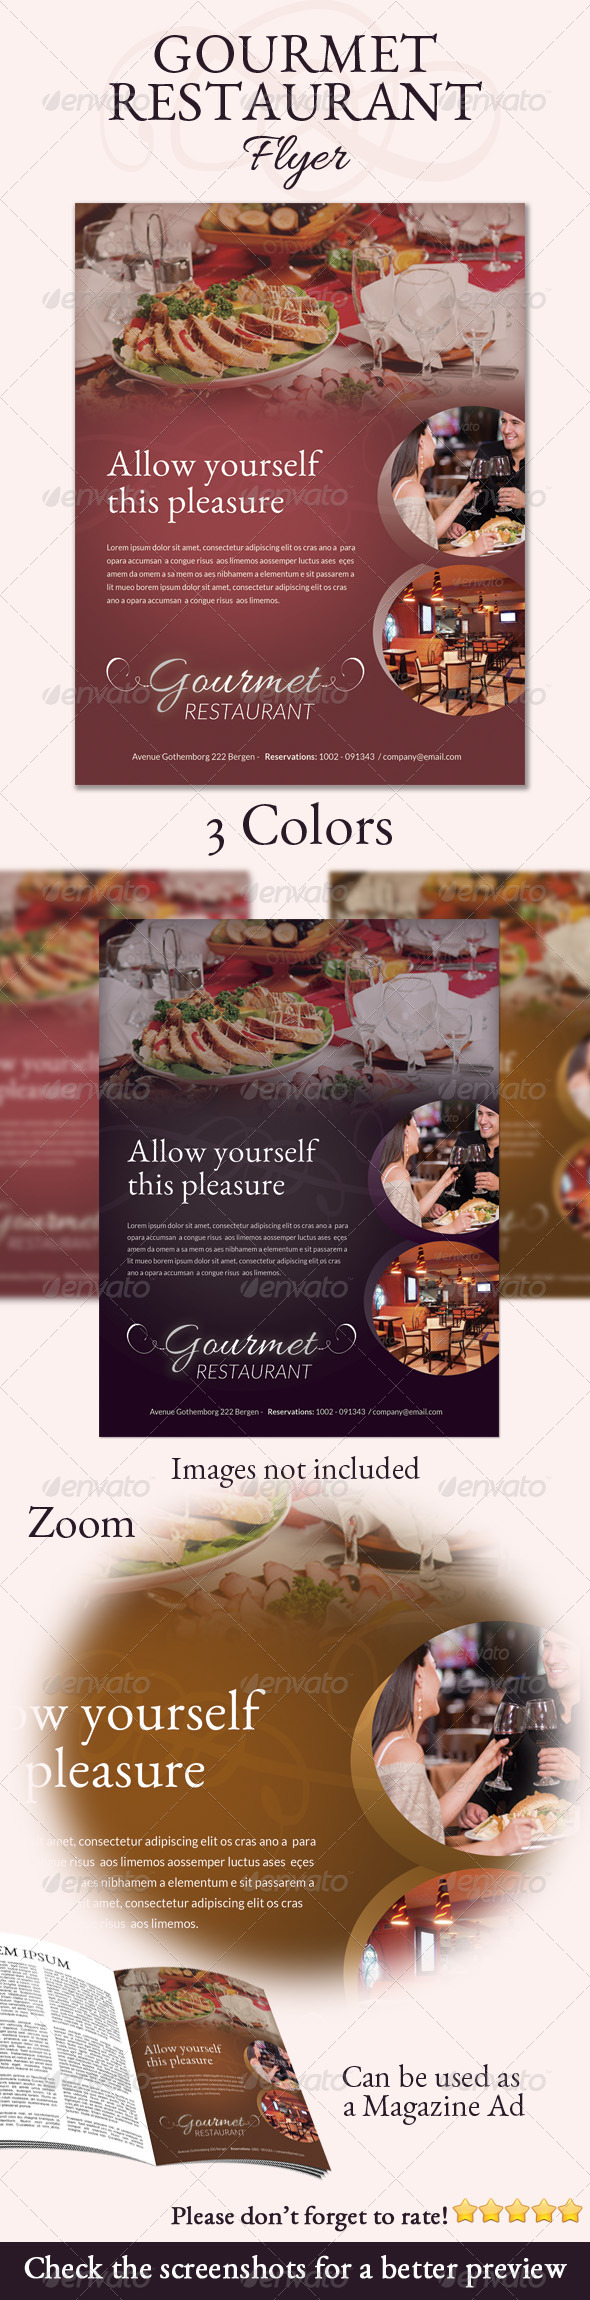 GraphicRiver Gourmet Restaurant Flyer 6135631